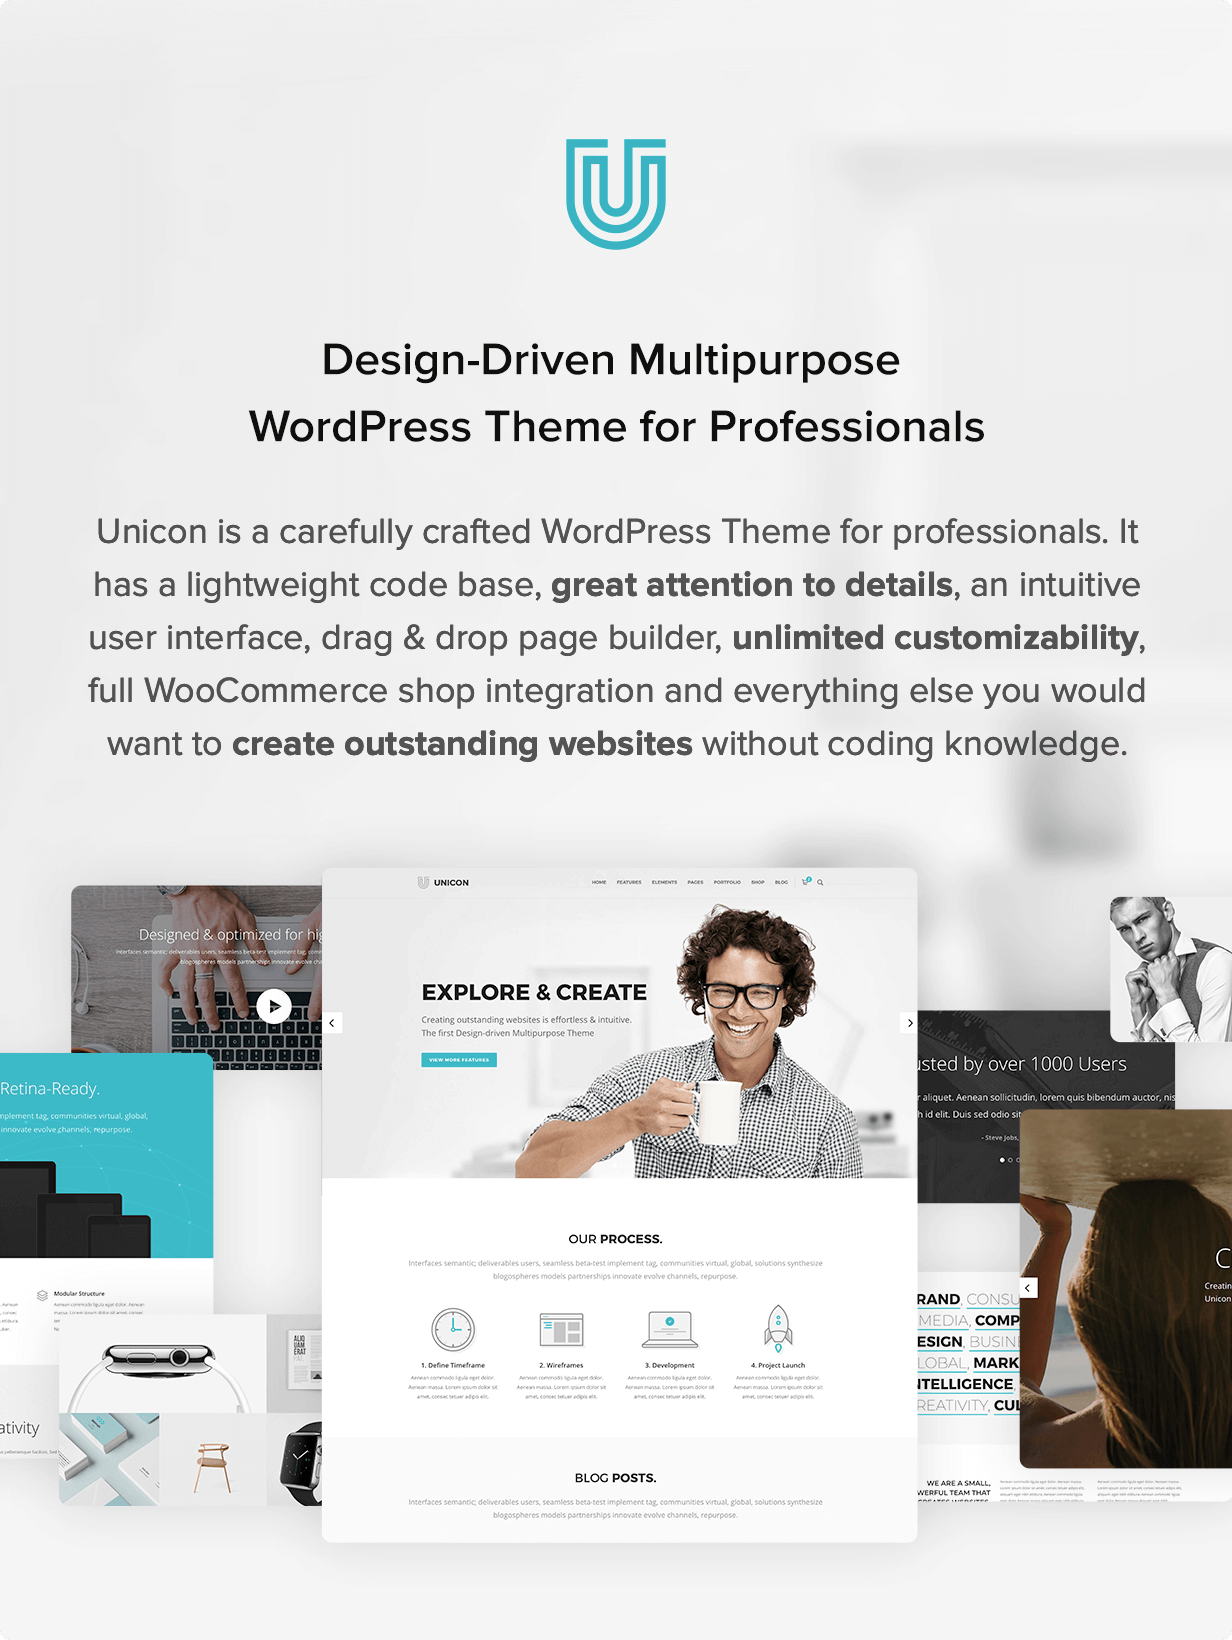 Unicon | Design-Driven Multipurpose Theme - 1